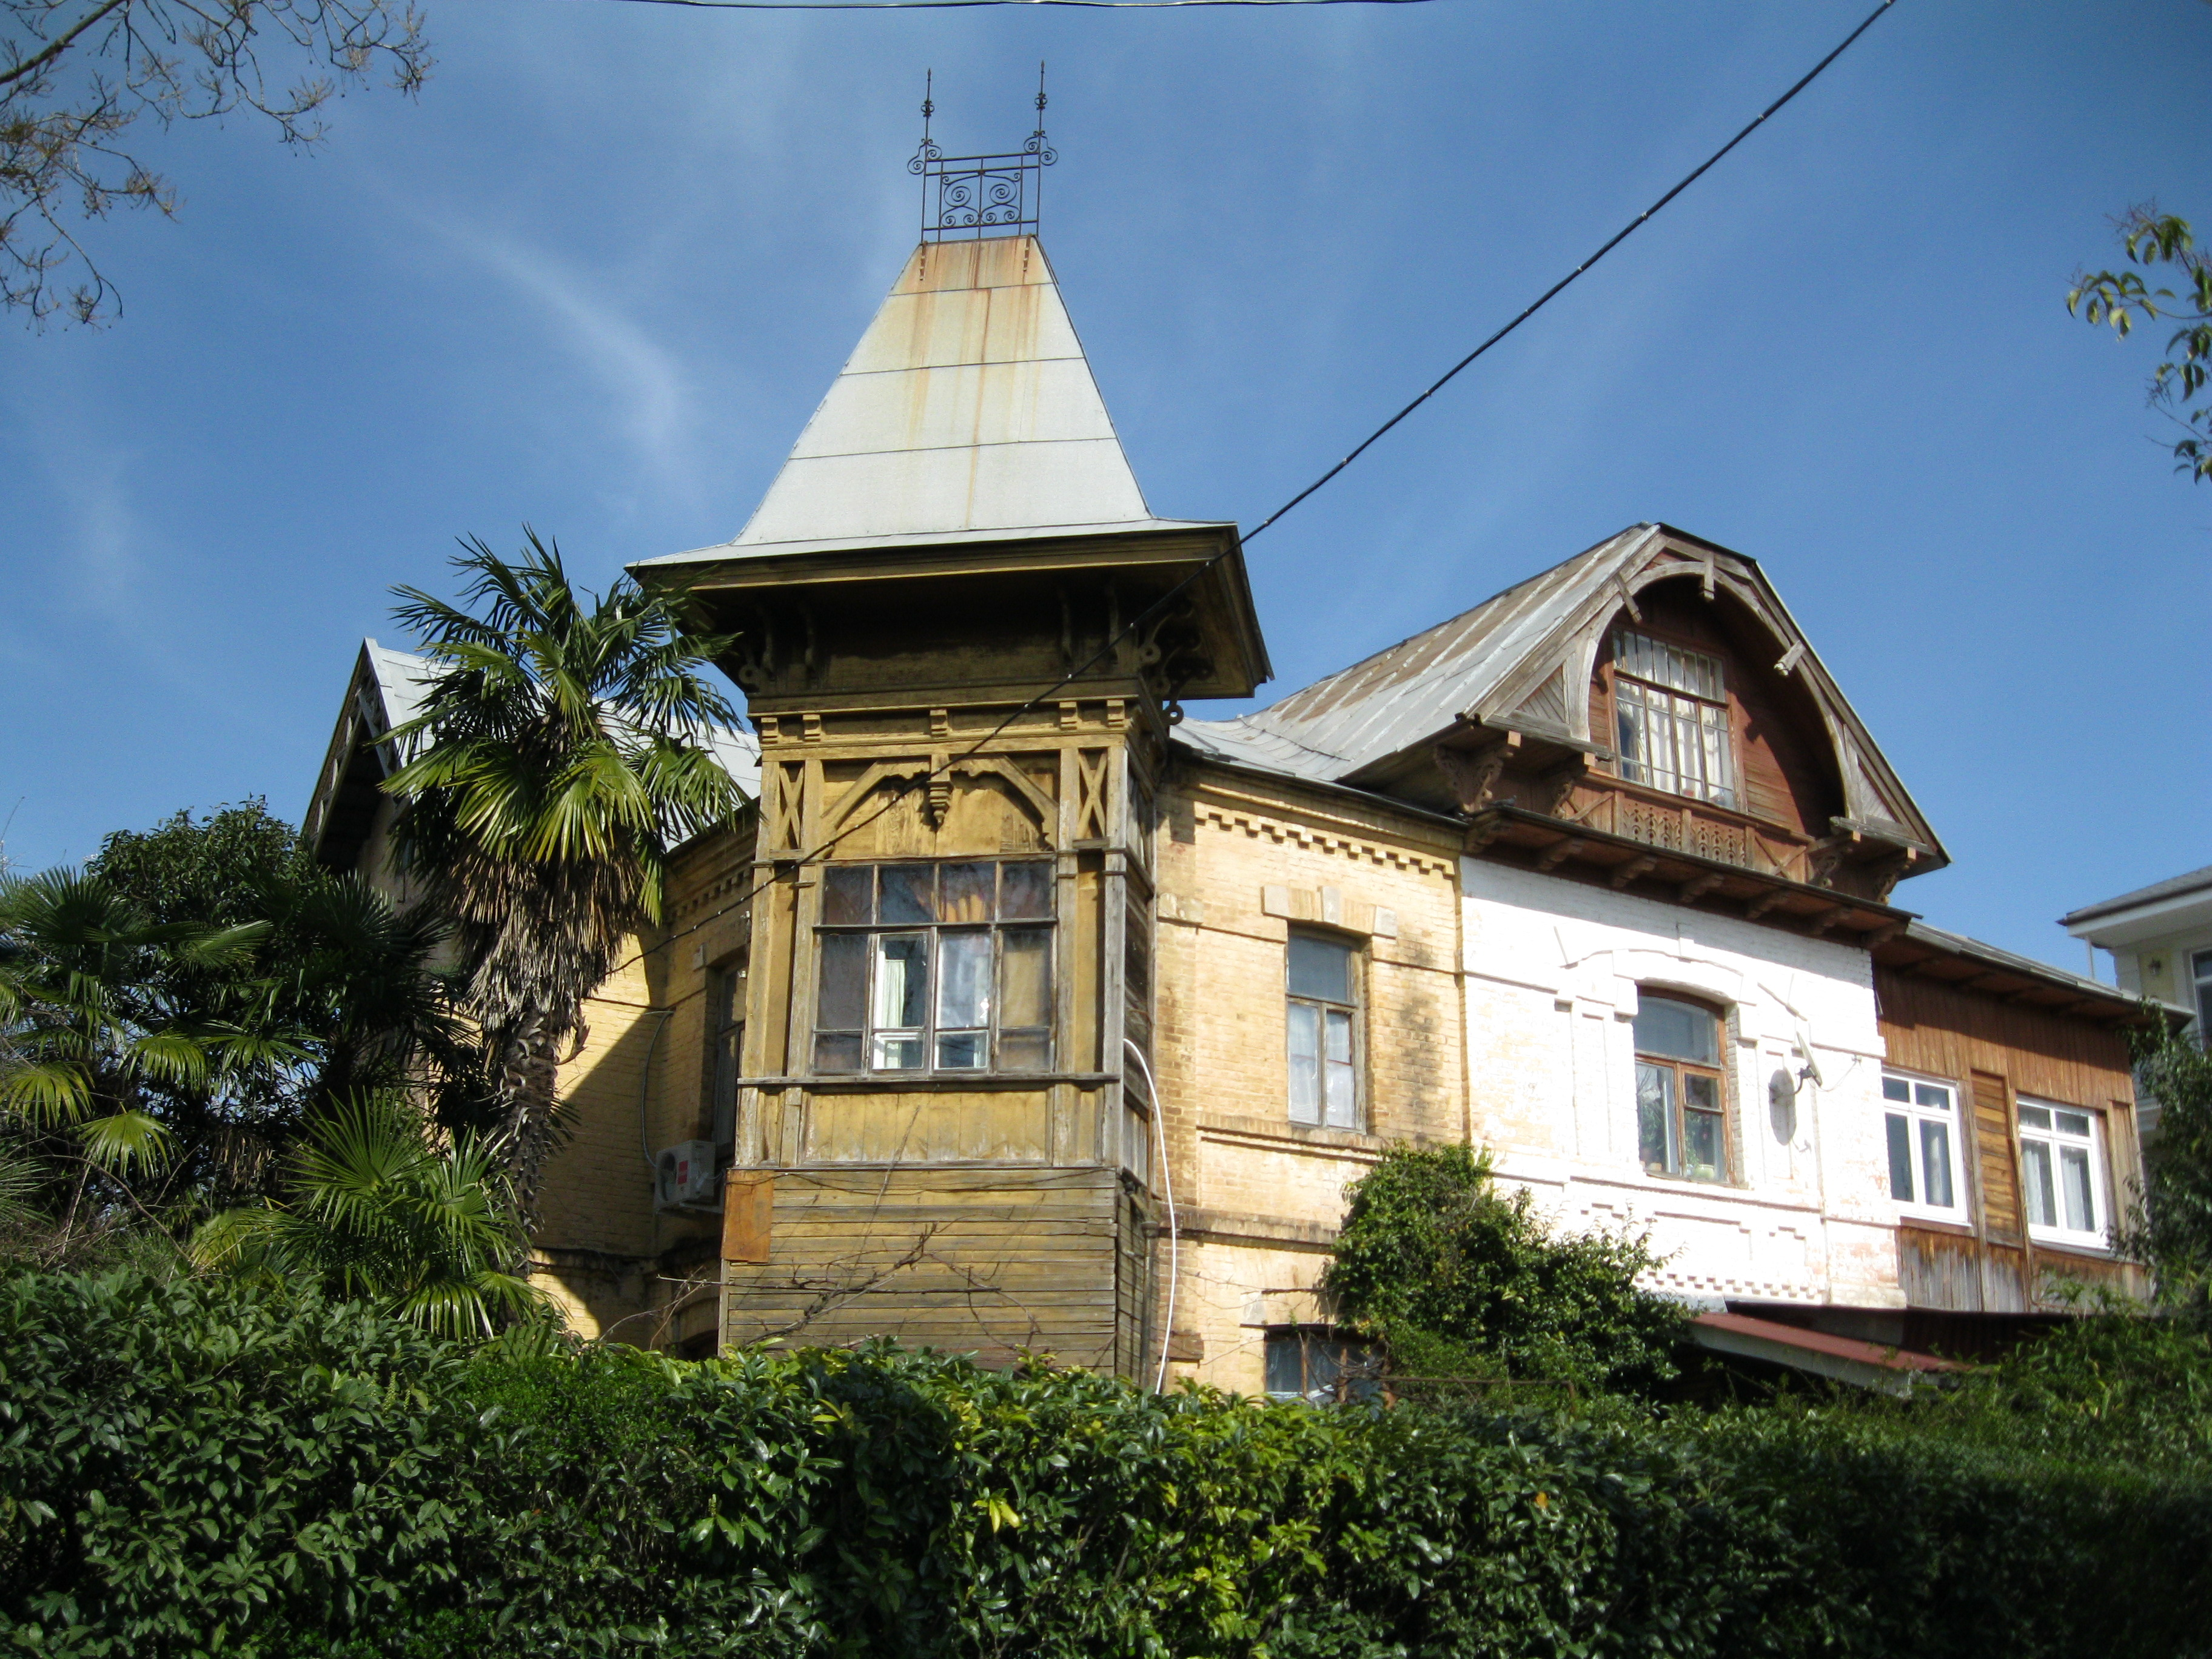 Uspensky_house_Sochi